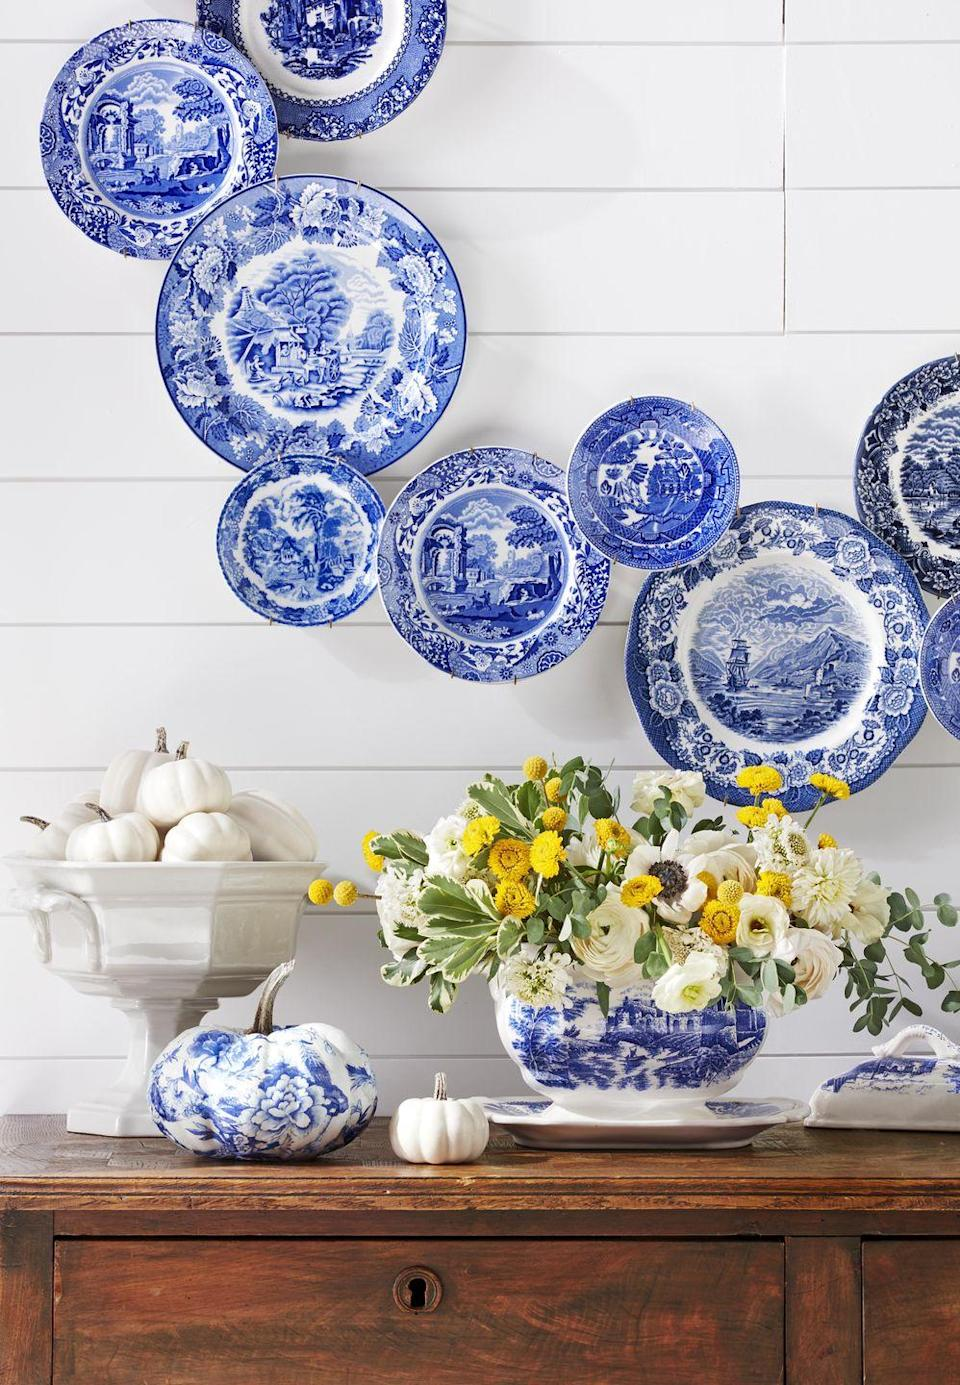 """<p>A vintage blue-and-white transferware tureen stuffed full of white and yellow flowers, with hints of greenery, looks great on buffet or as a Thanksgiving table centerpiece. Hang blue and white plates in a wreath shape on the wall and decoupage a white pumpkin with blue and white toile wallpaper (you can use color copies, too).</p><p><a class=""""link rapid-noclick-resp"""" href=""""https://www.amazon.com/Spode-Georgian-Plates-Assorted-Motifs/dp/B0000B2PK6/ref=sr_1_1?tag=syn-yahoo-20&ascsubtag=%5Bartid%7C10050.g.1371%5Bsrc%7Cyahoo-us"""" rel=""""nofollow noopener"""" target=""""_blank"""" data-ylk=""""slk:SHOP BLUE AND WHITE PLATES"""">SHOP BLUE AND WHITE PLATES</a></p>"""